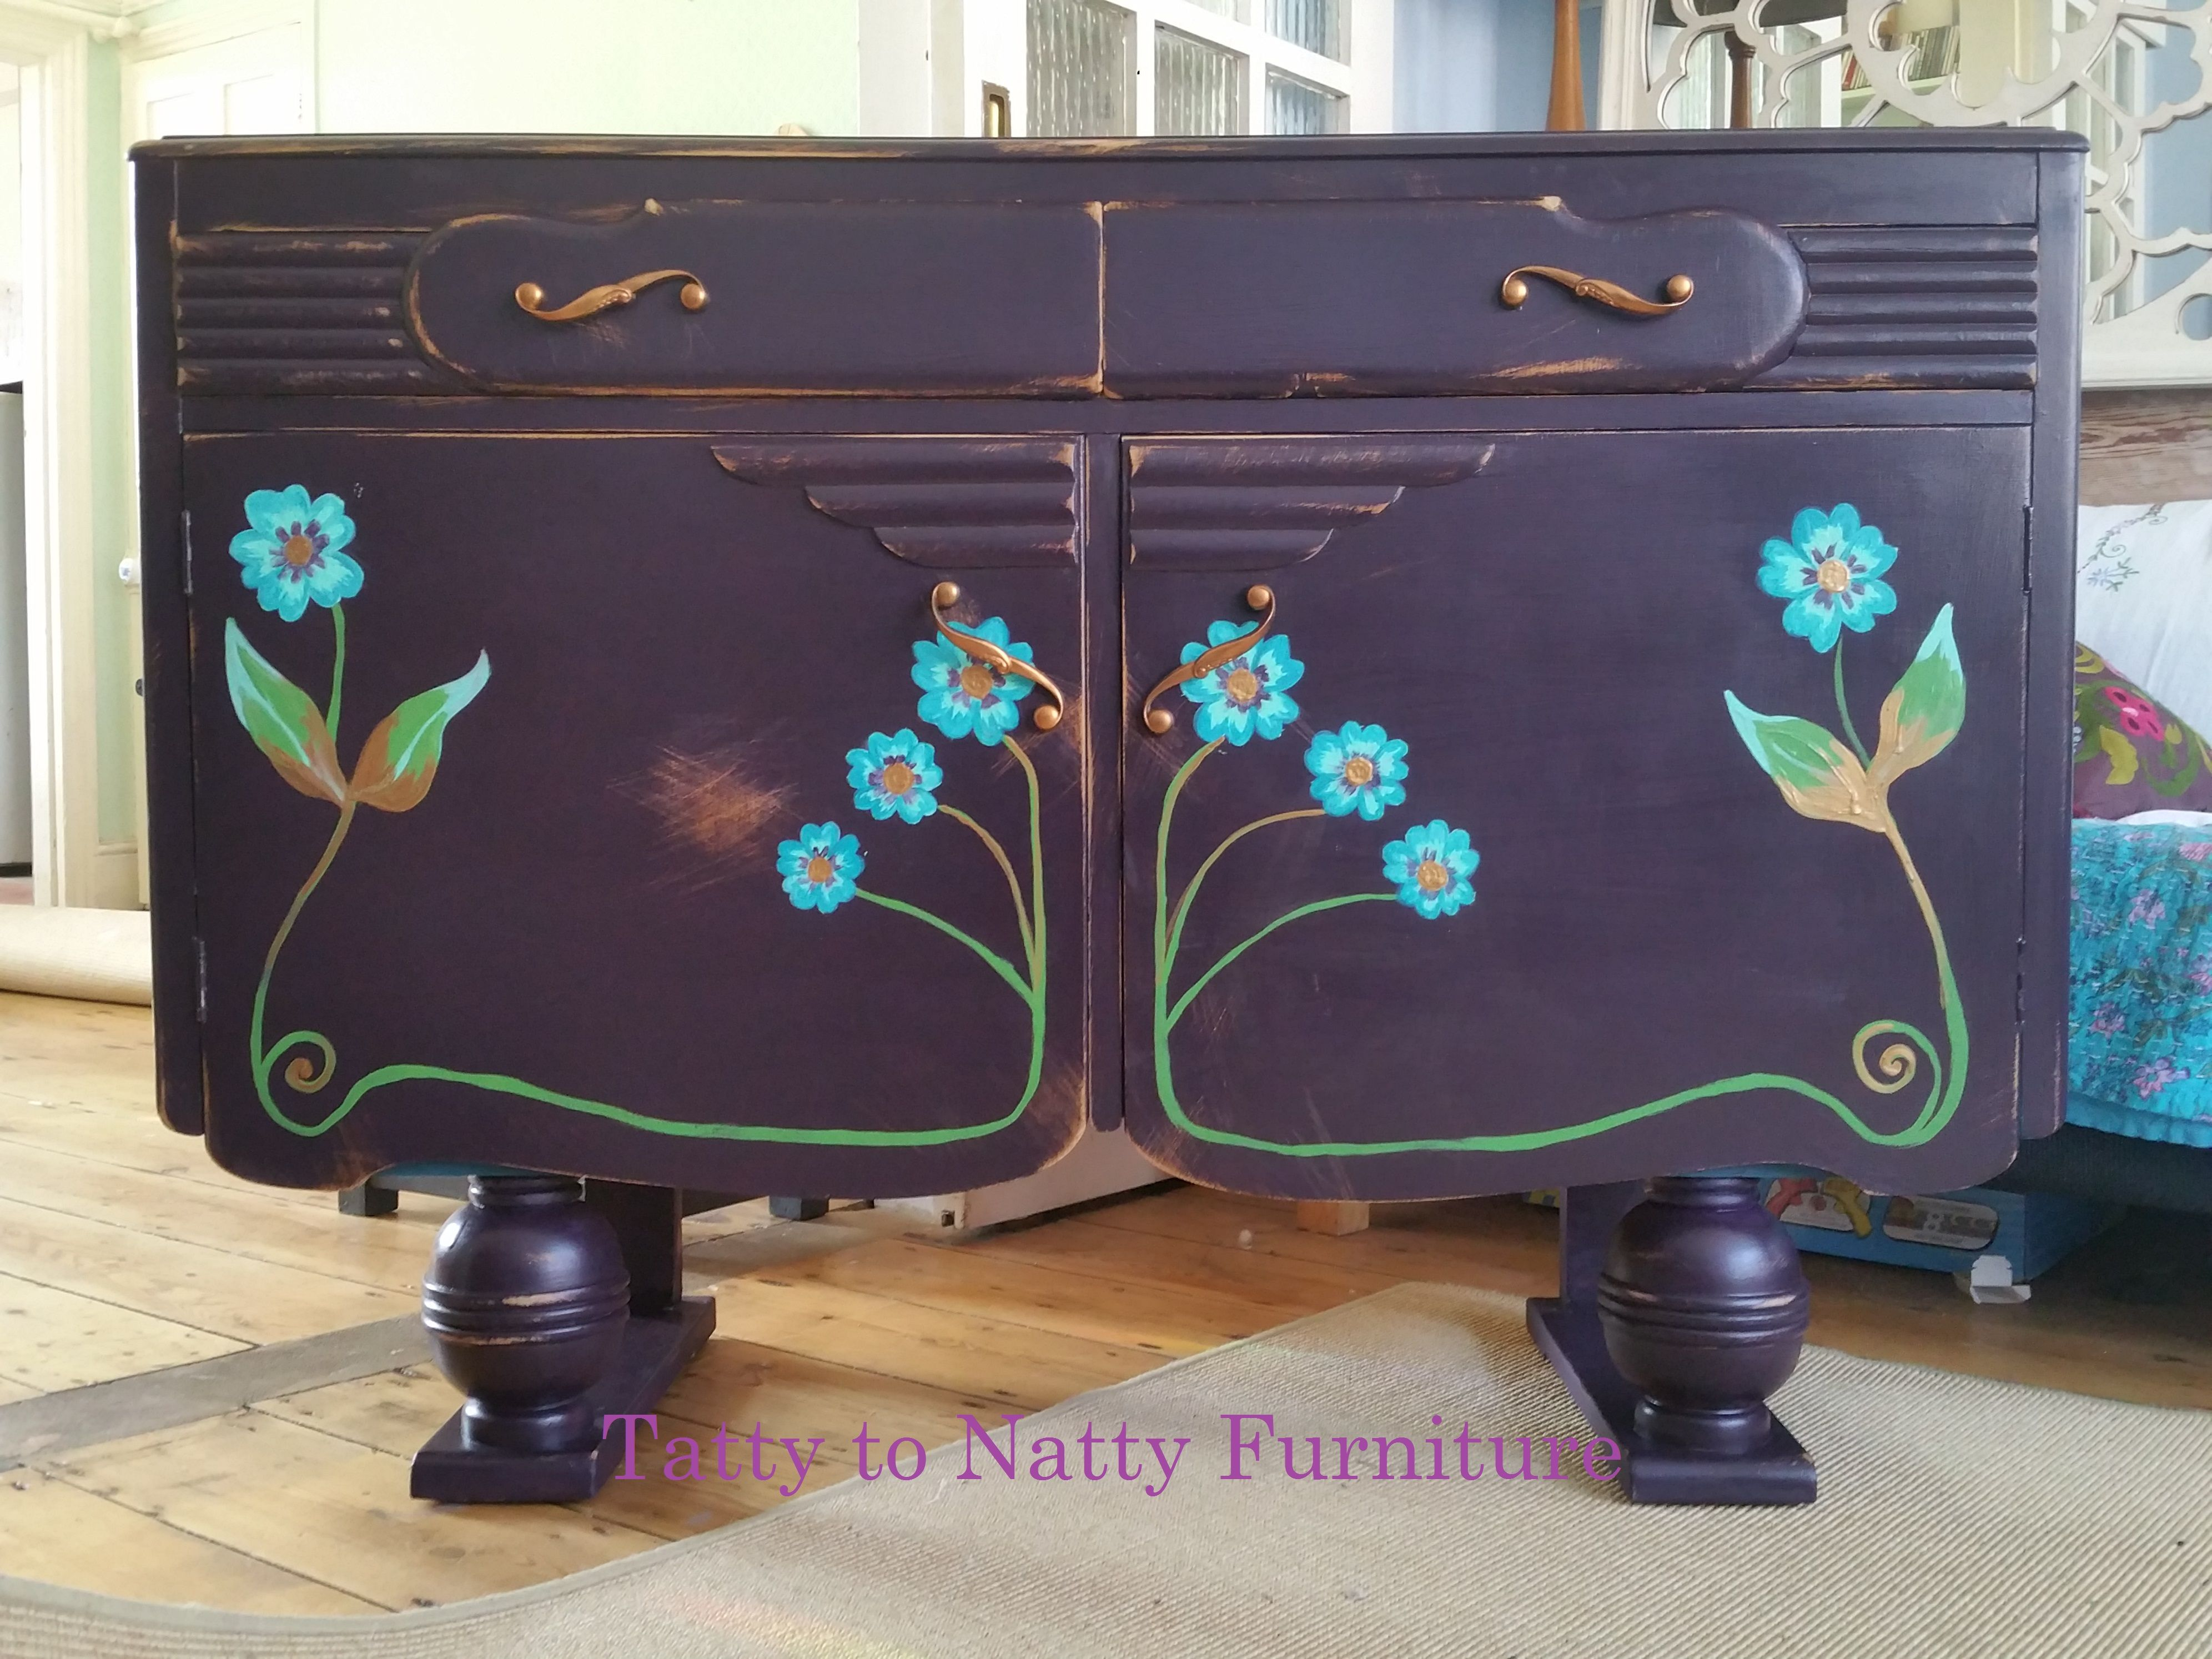 Vintage Art Deco Sideboard Upcycled Painted In Art Nouveau